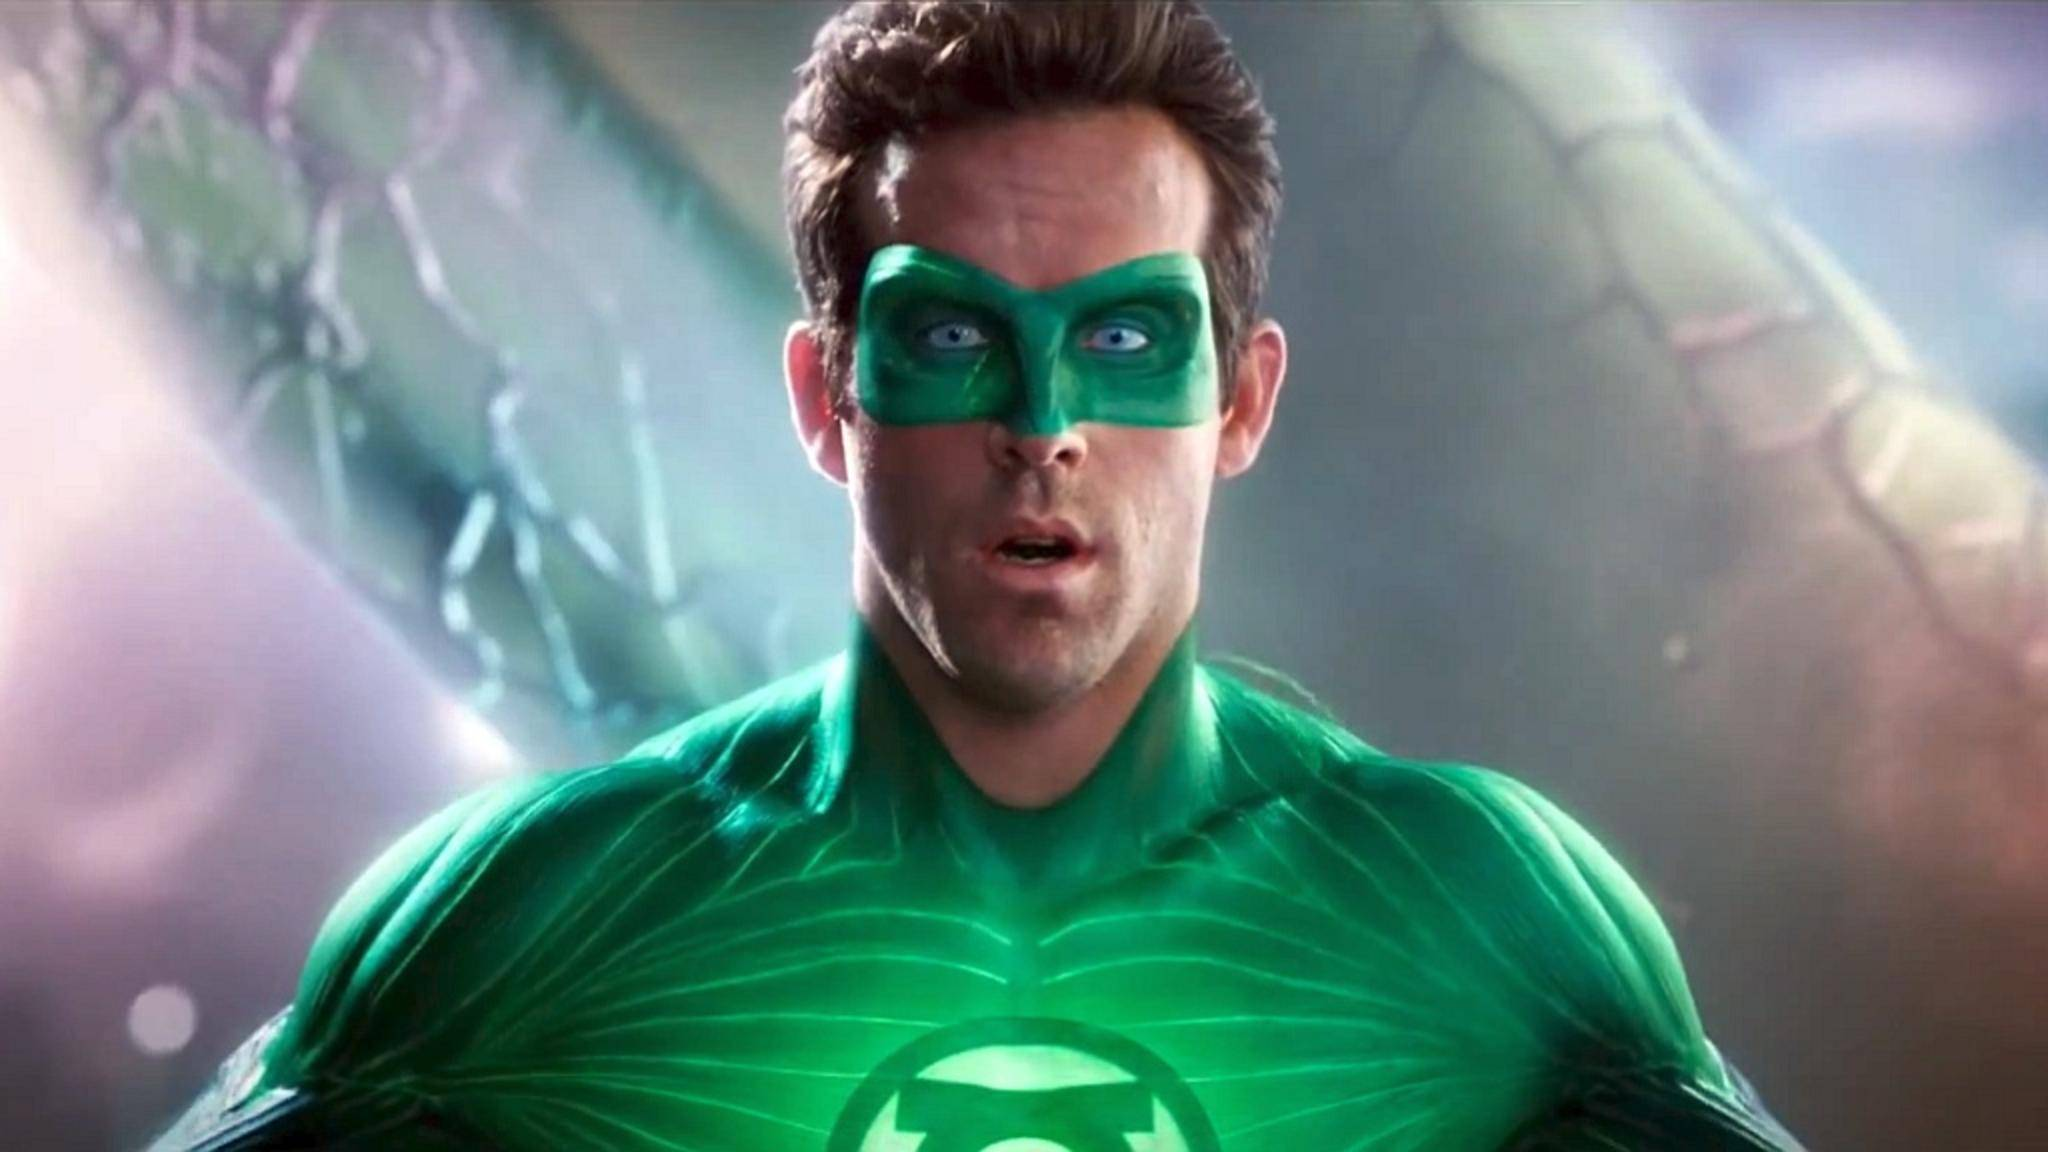 green-lantern-ryan-reynolds-youtube-warnerbrosent